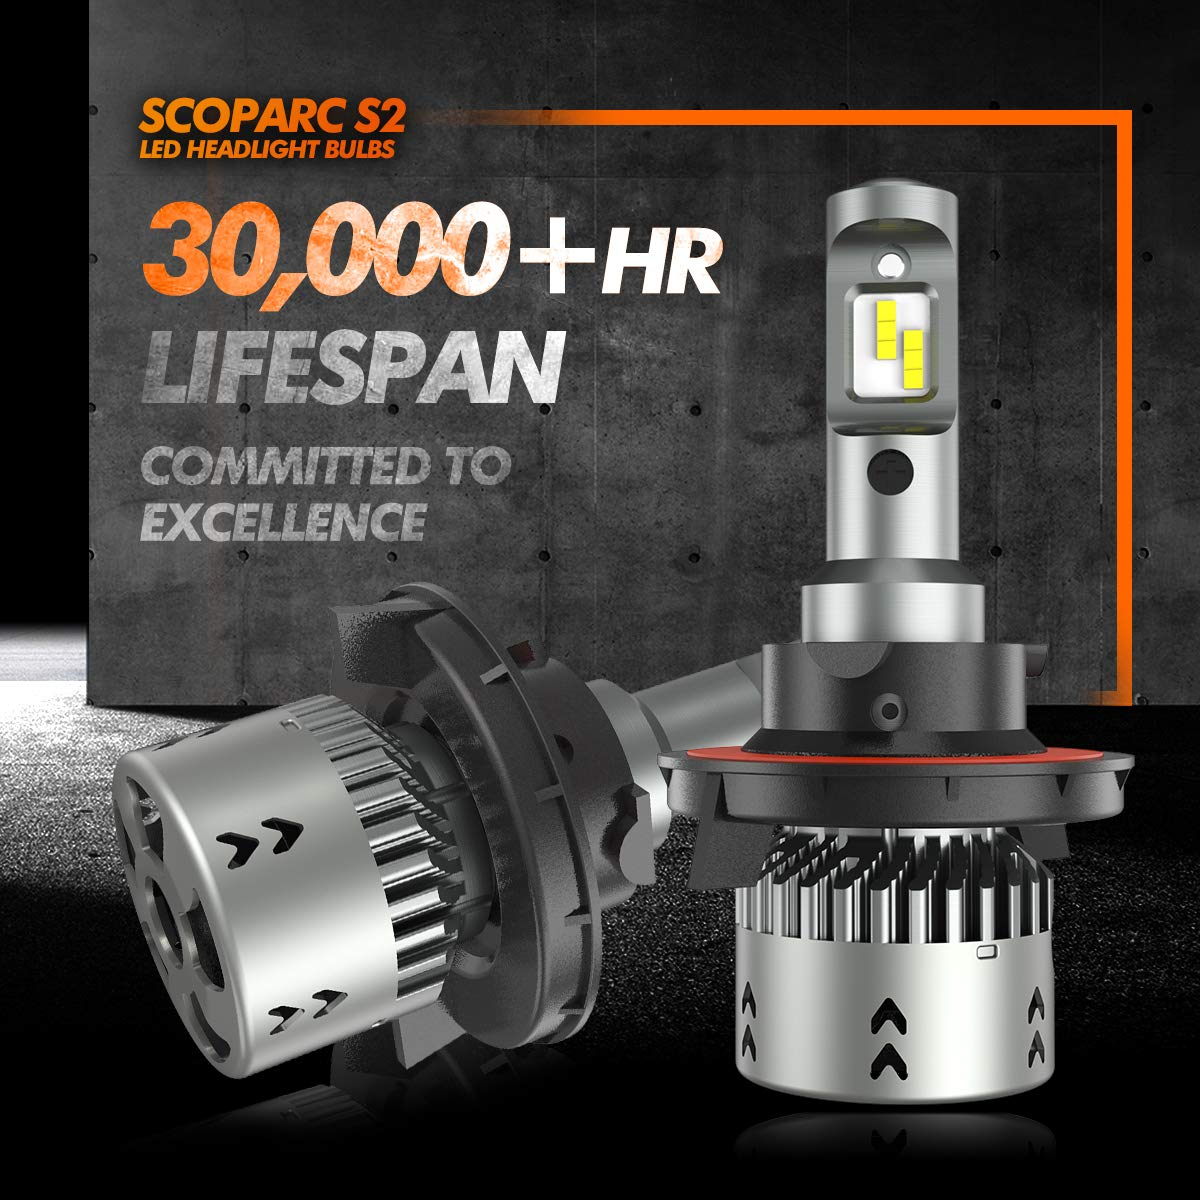 SEALIGHT Scoparc S2 H13//9008 LED Headlight Bulbs 6000K Bright White 1:1 Halogen Bulb Design H13 LED High Beam Low Beam